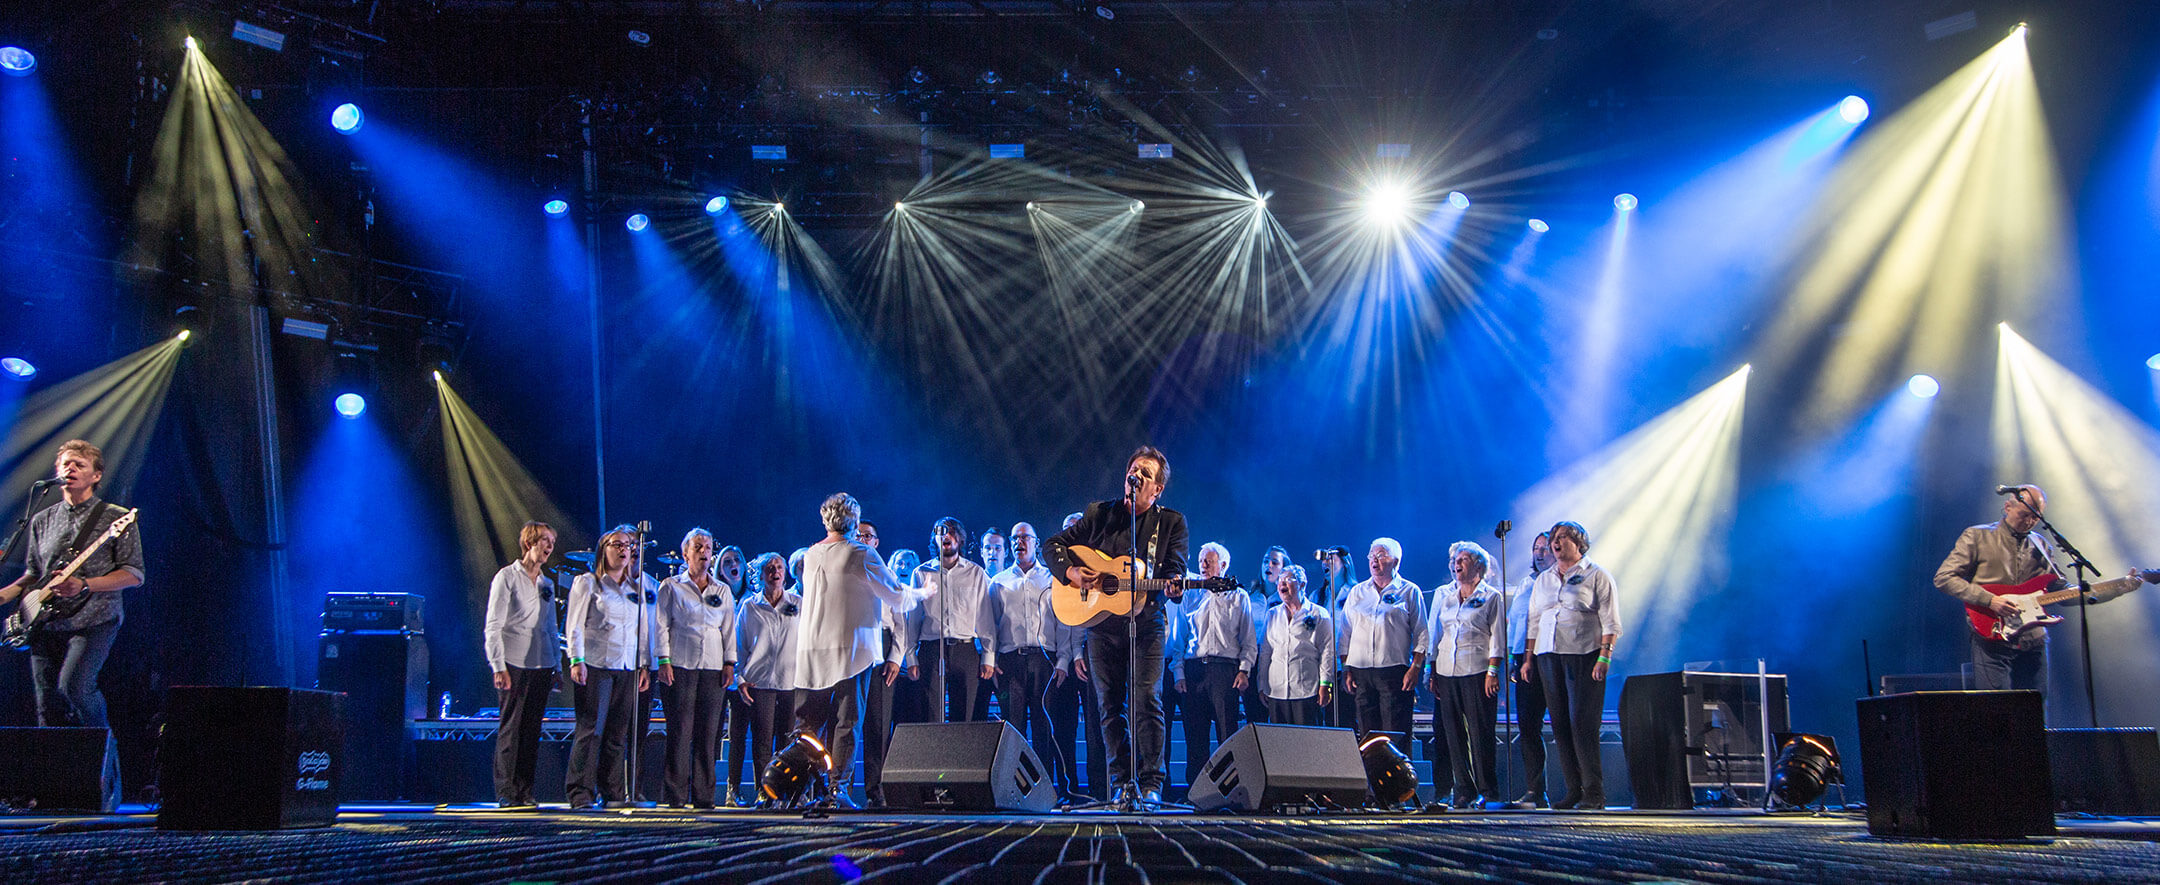 Glasgow Islay Gaelic Choir performing with Donnie Munro and Runrig at The Last Dance, August 2018.